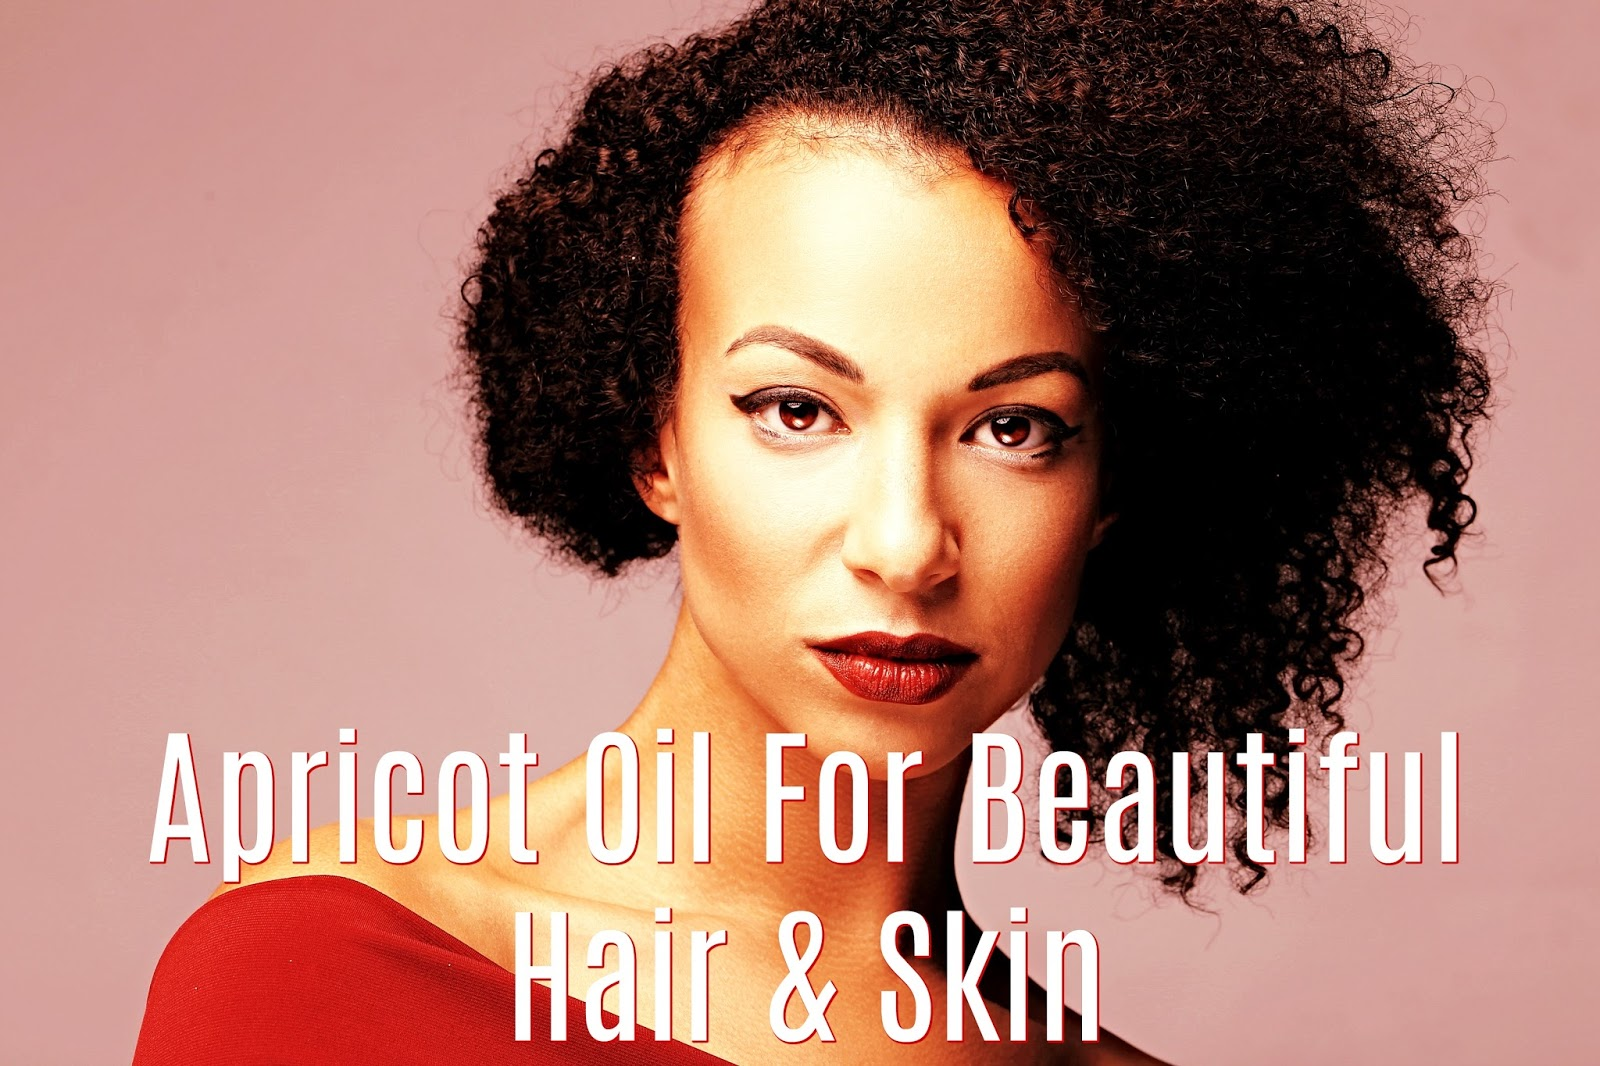 Click here to buy NOW 100% Pure Apricot Oil for your hair and skin!